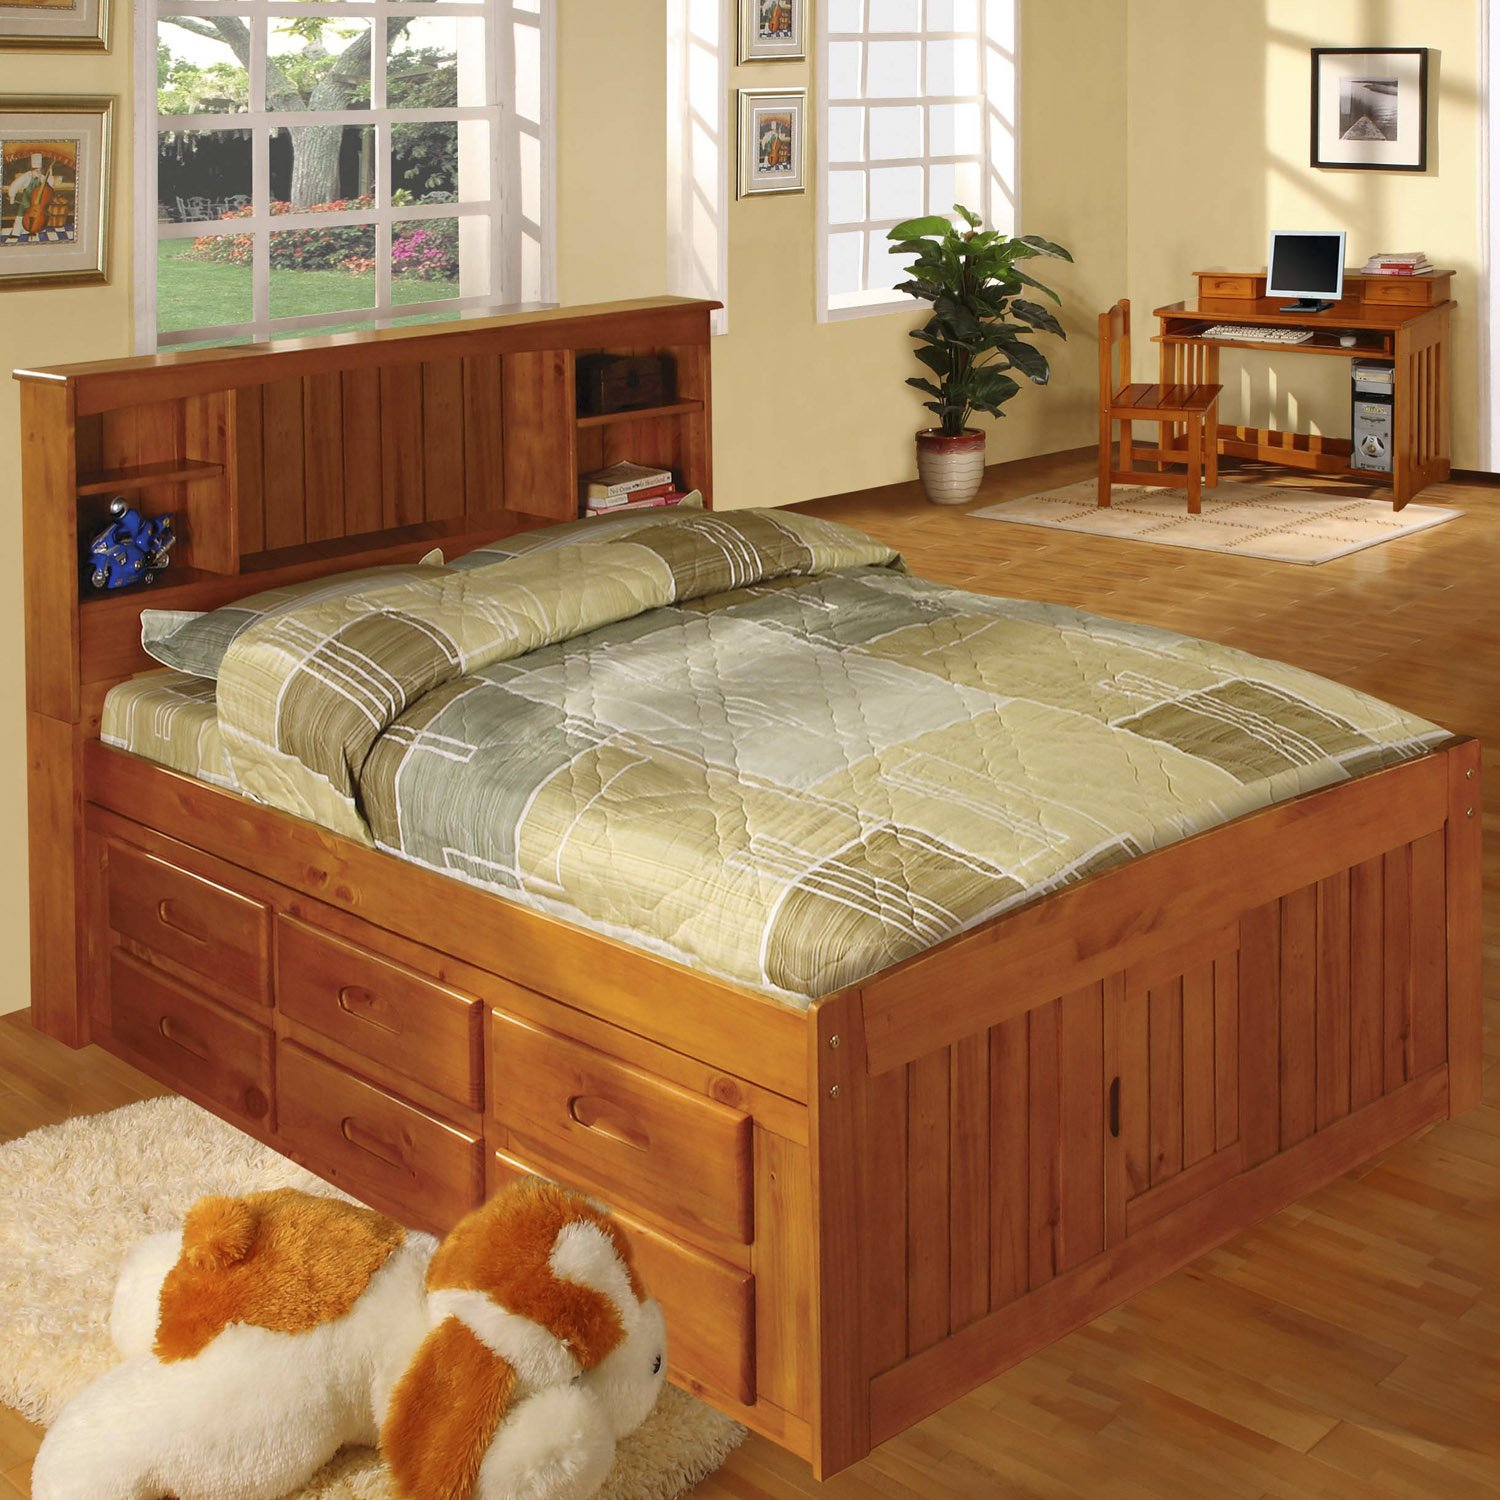 bed and ideas custom bookcase bookcases full king with shelf bedroom designs queen size headboard shelves of storage